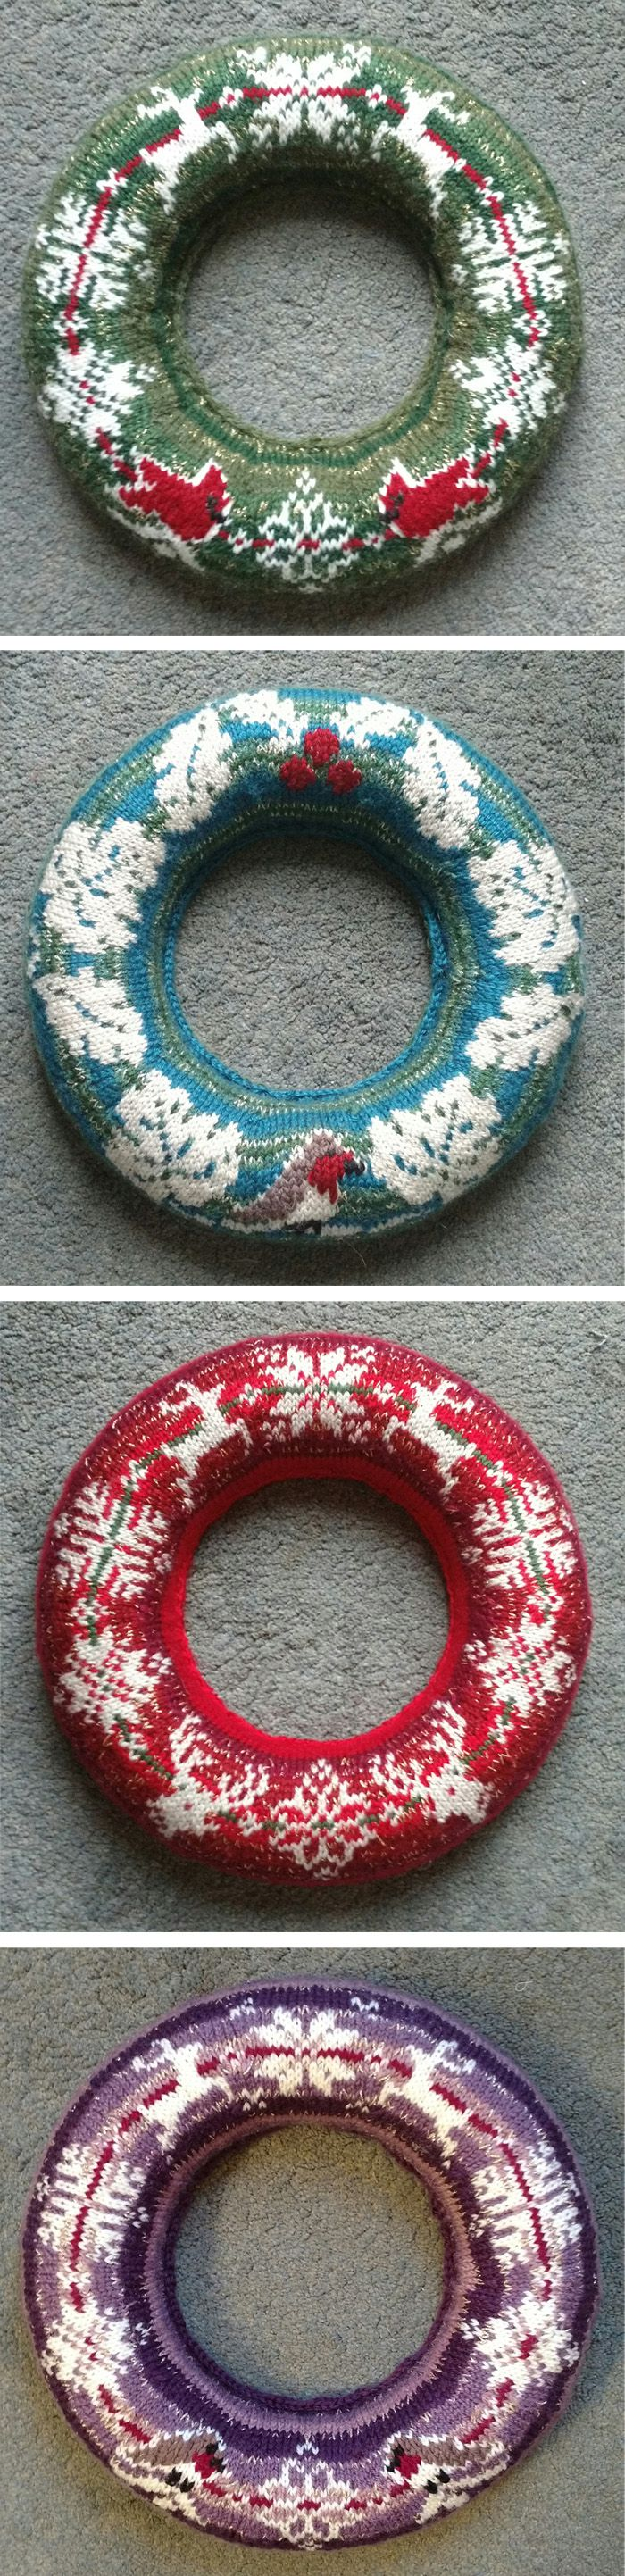 Free Knitting Patterns for Christmas Sweater Wreaths - Four wreath designs inspired by traditional Christmas sweater / jumper Fair Isle and Norwegian motifs. Designs include: Reindeer,Robins (not pictured), Red Cardinals , and Ivy, oak and holly leaves. Designed by Zoe Michel. Final dimensions: 35cm/13.75in diameter